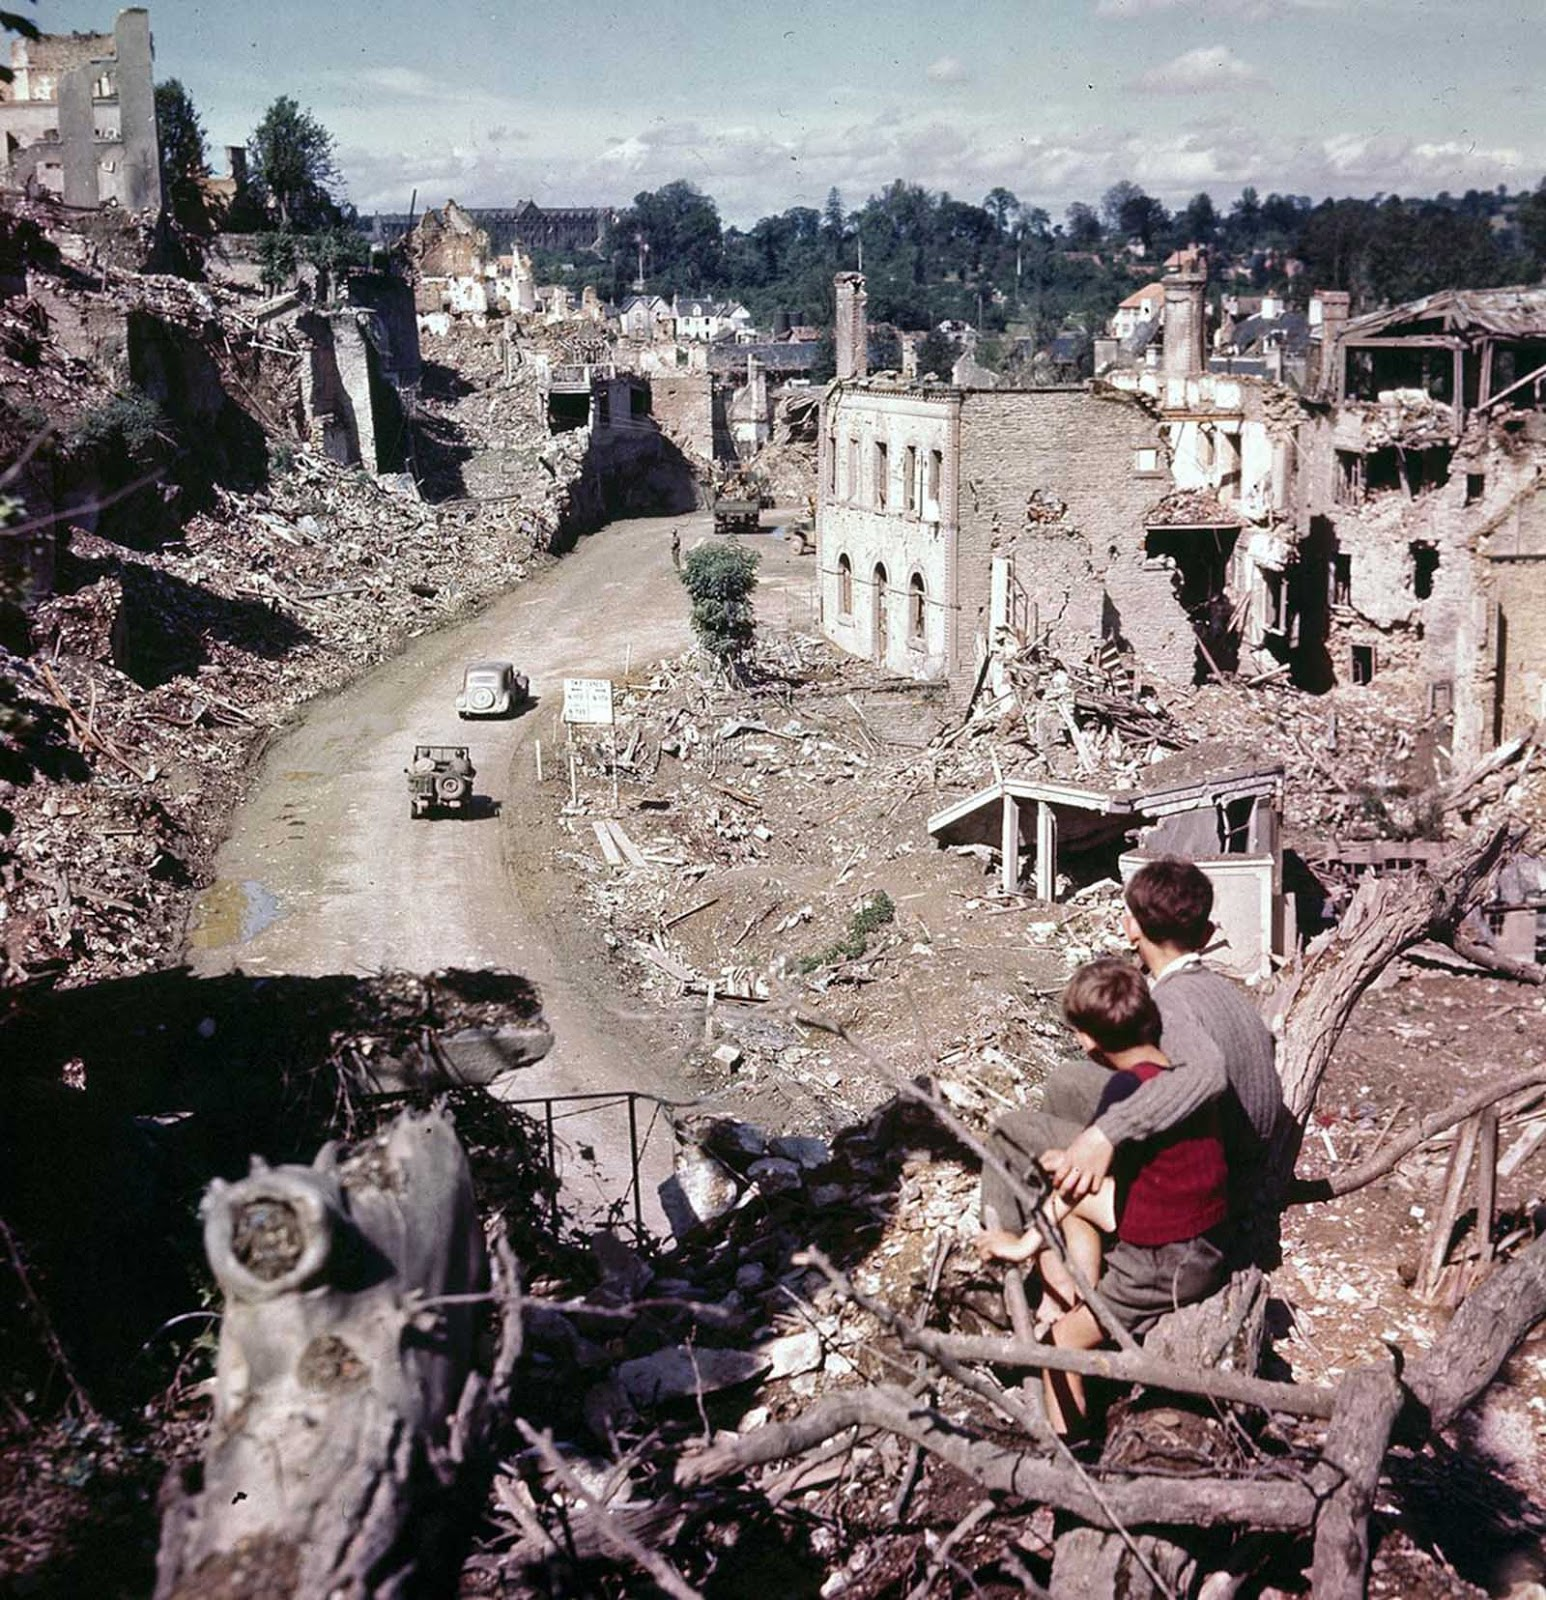 A view from a hilltop overlooking the road leading into St. Lo in July of 1944. Two French children in the foreground watch convoys and trucks of equipment go through their almost completely destroyed city en route to the front.